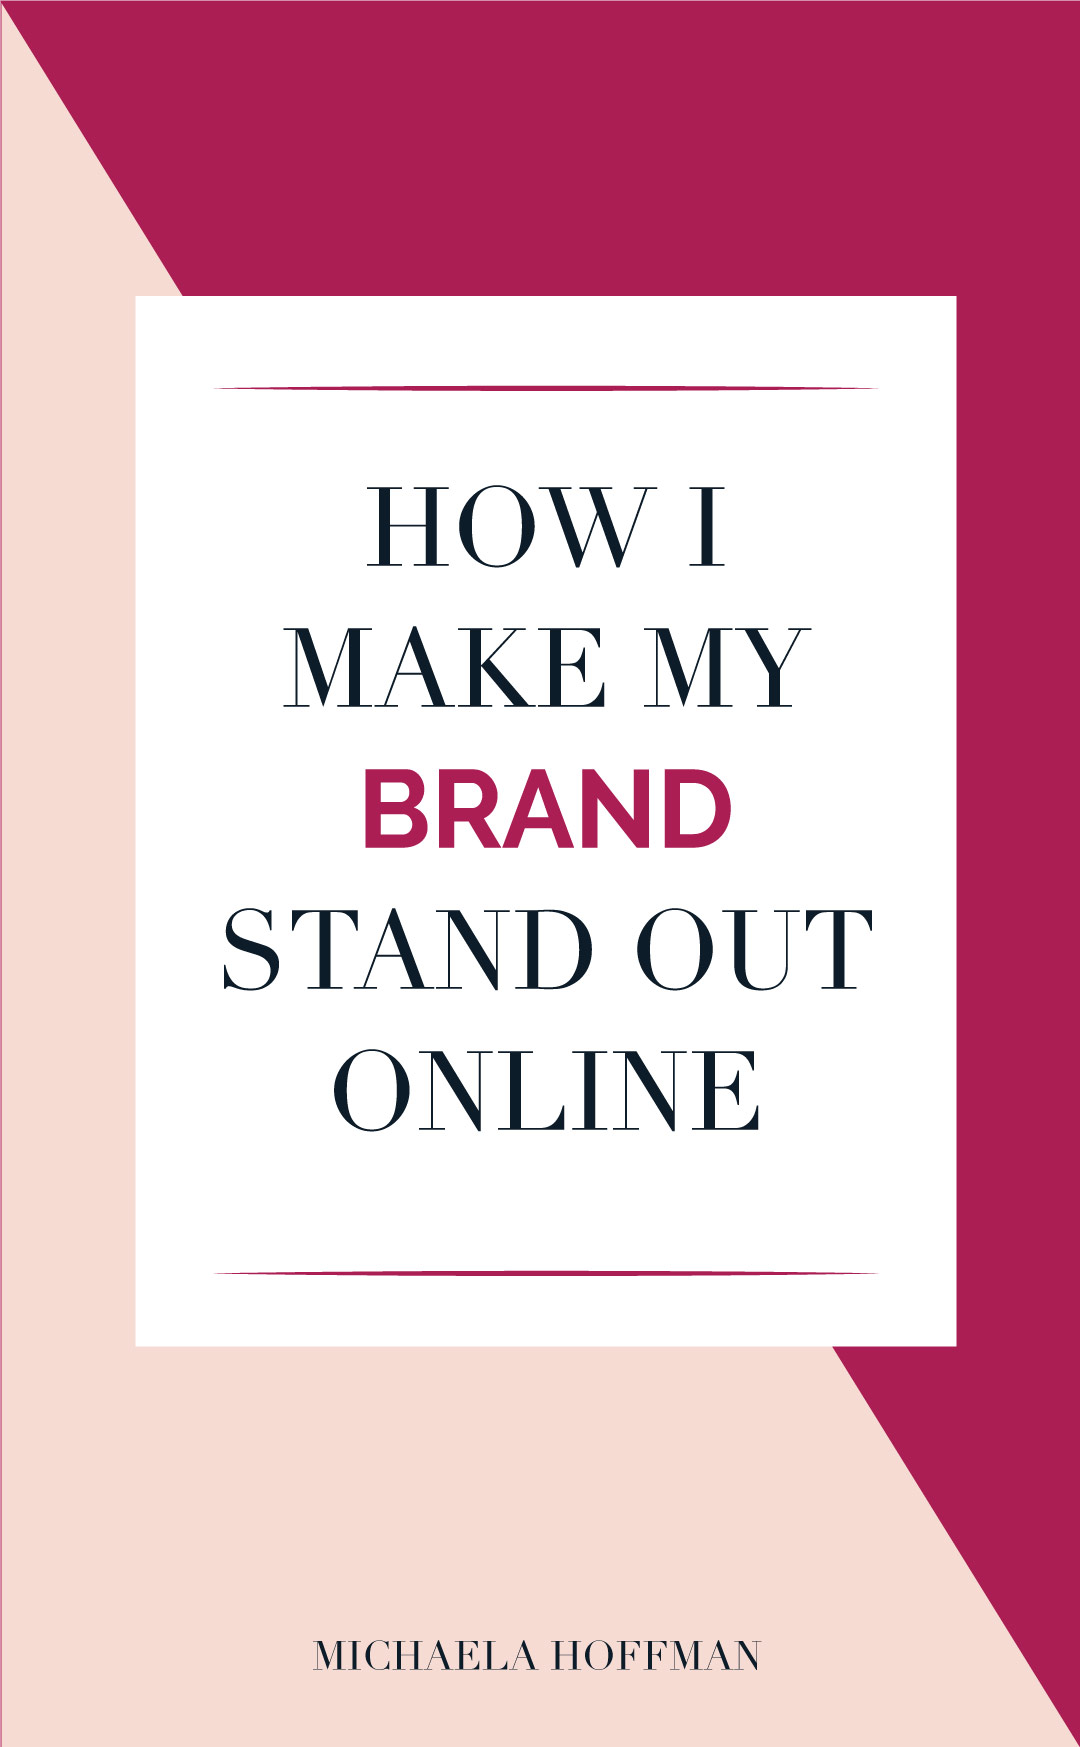 How to rise above the noise on online business owners and make your brand stand out getting visible to your ideal client and growing your online business.